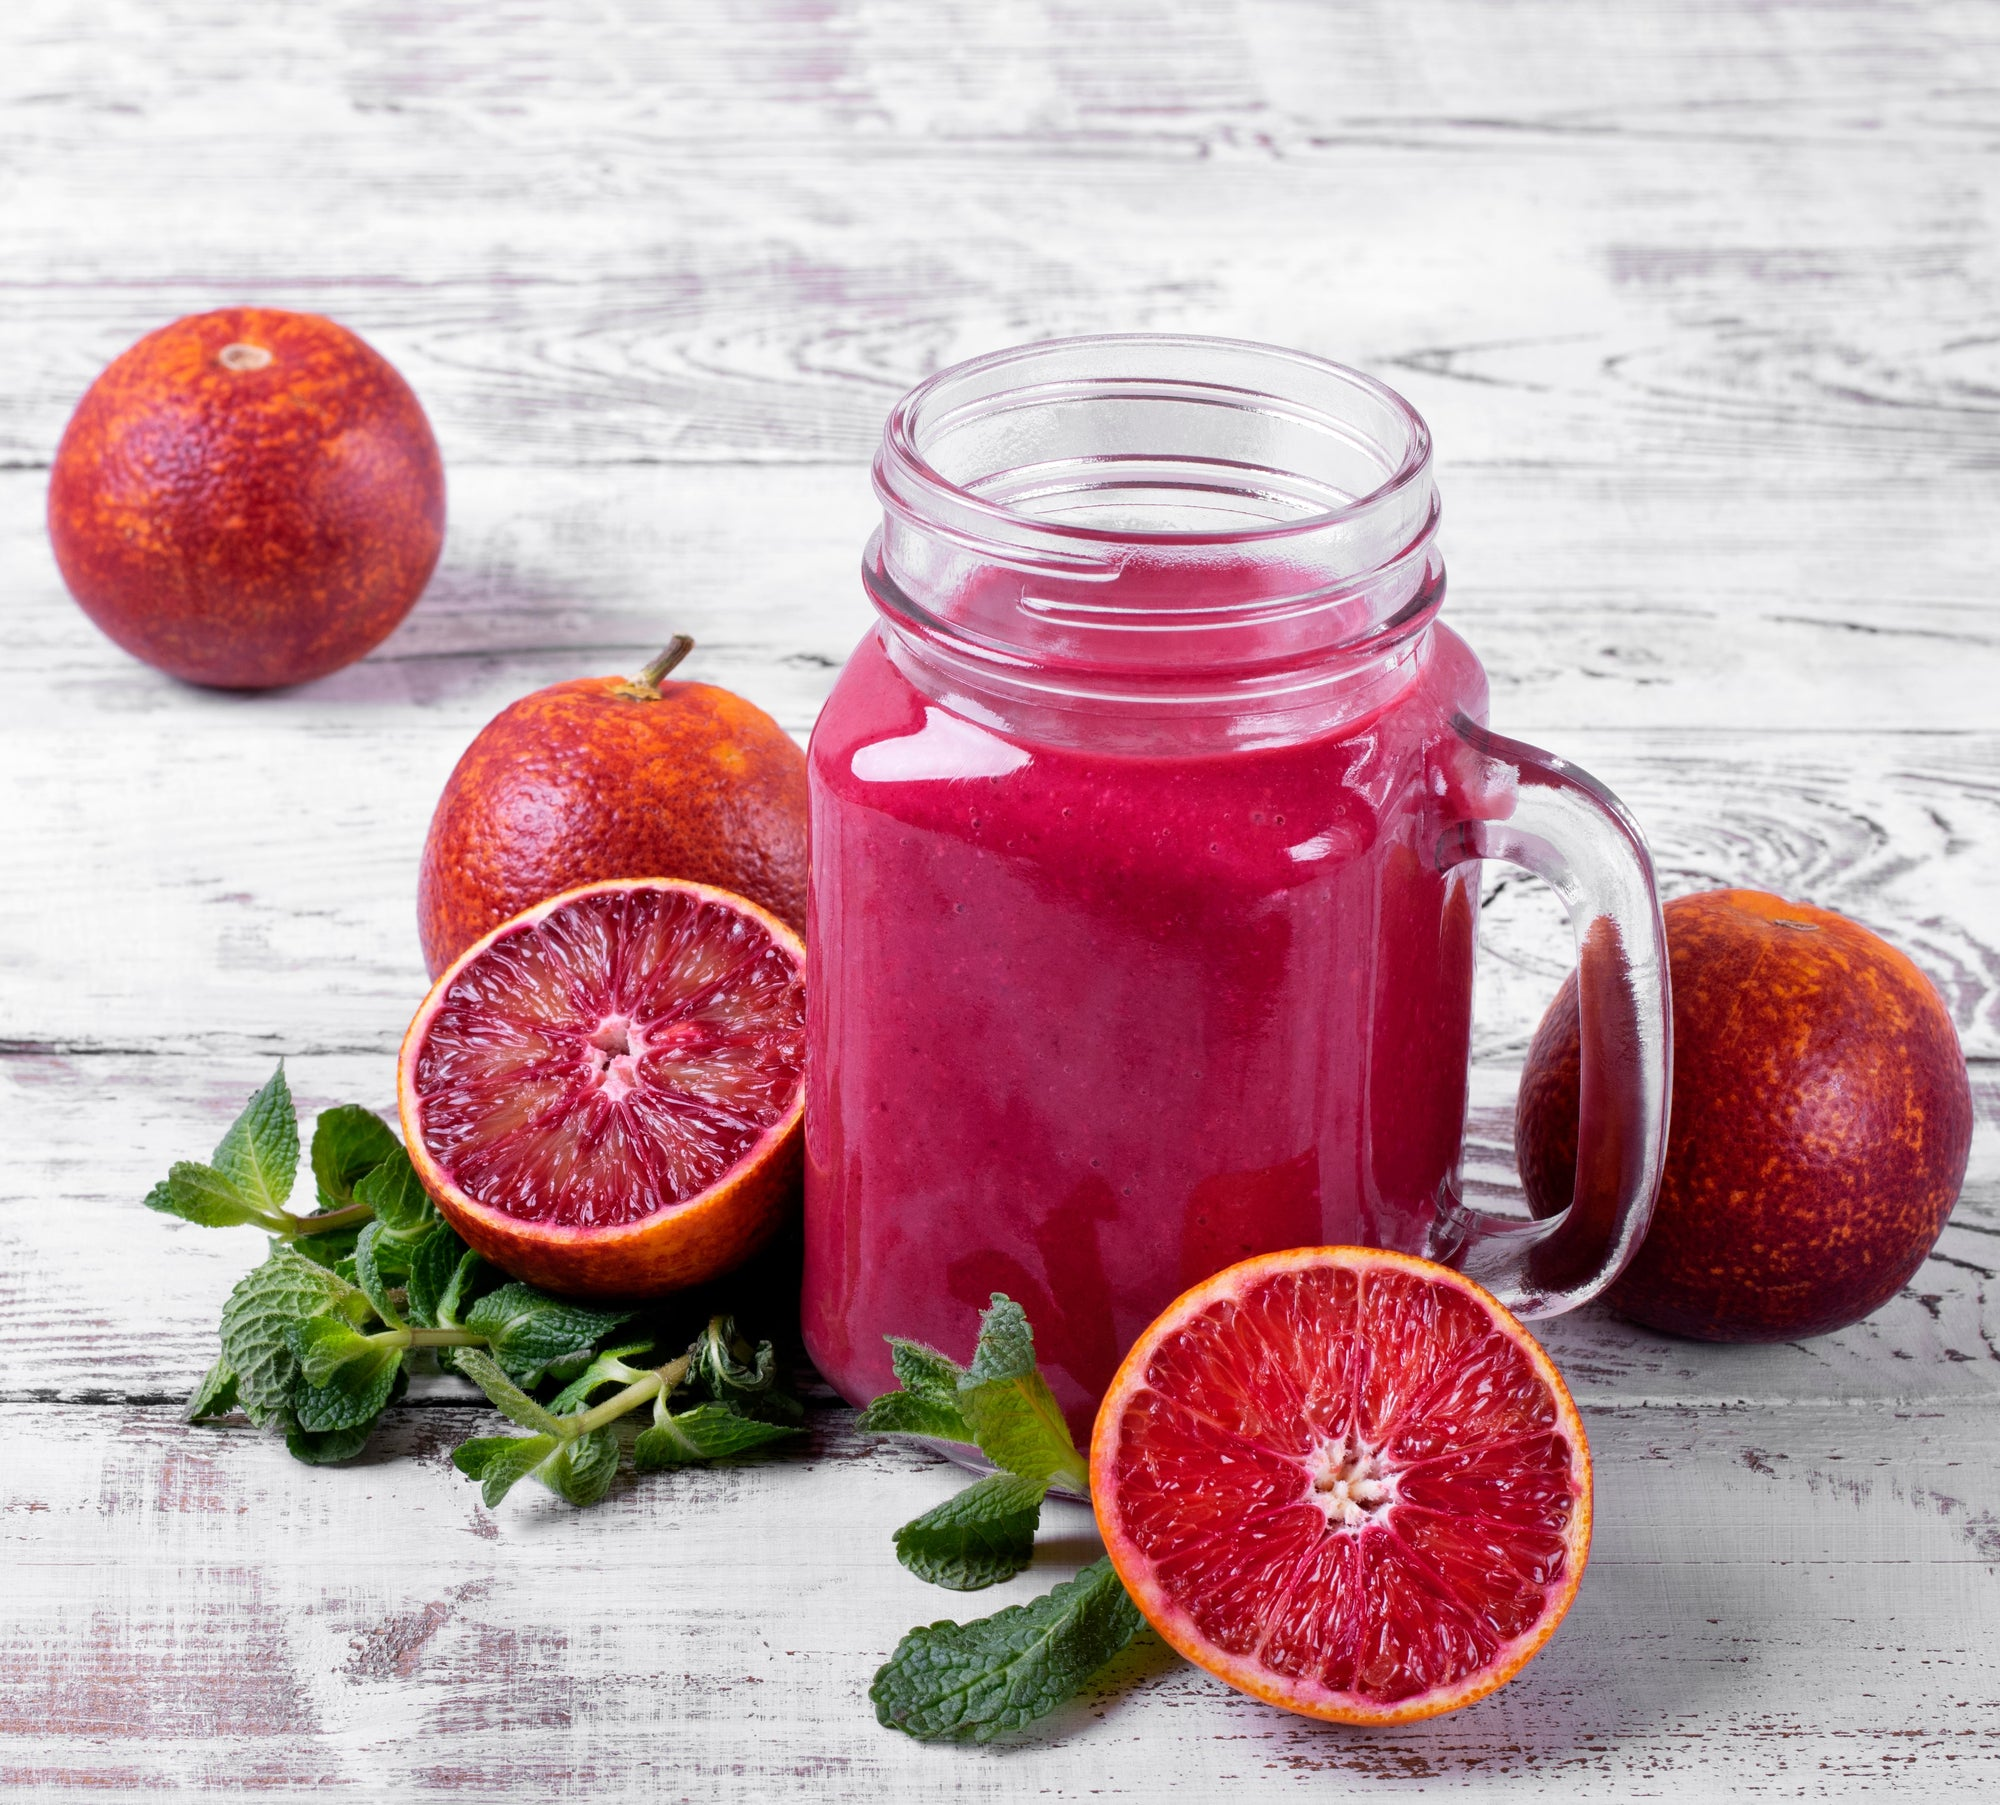 Shante's Blood Orange Greens Smoothie